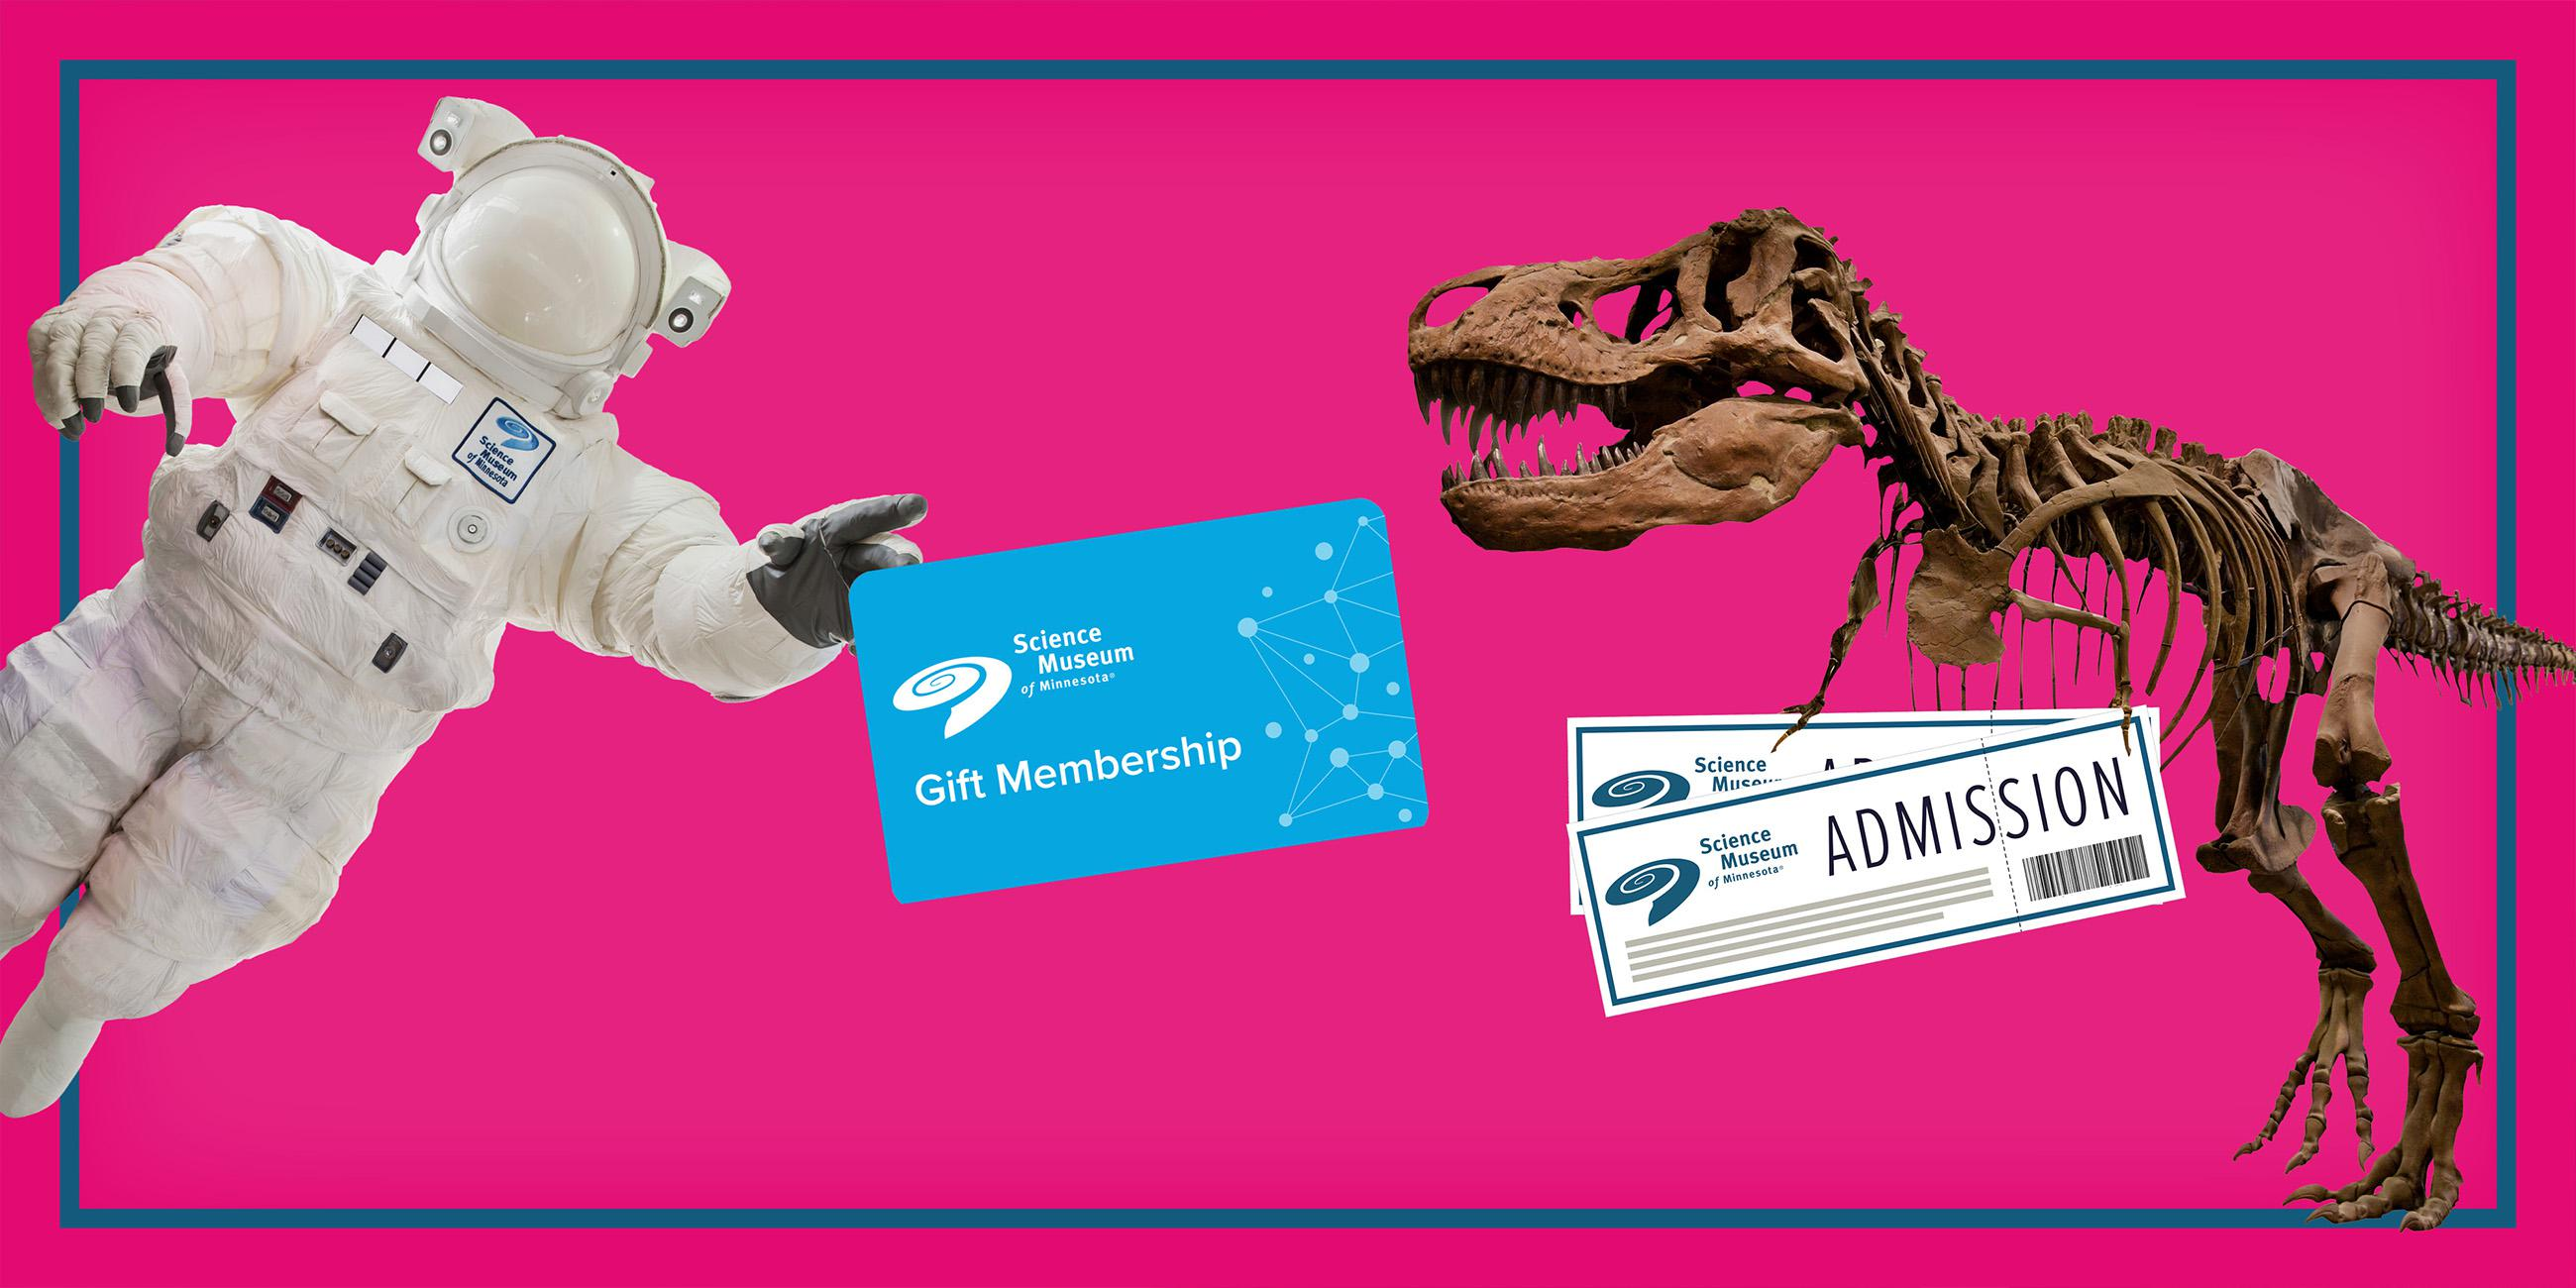 Giant astronaut holding a gift Membership gift card with a T-rex skeleton holding two museum tickets.